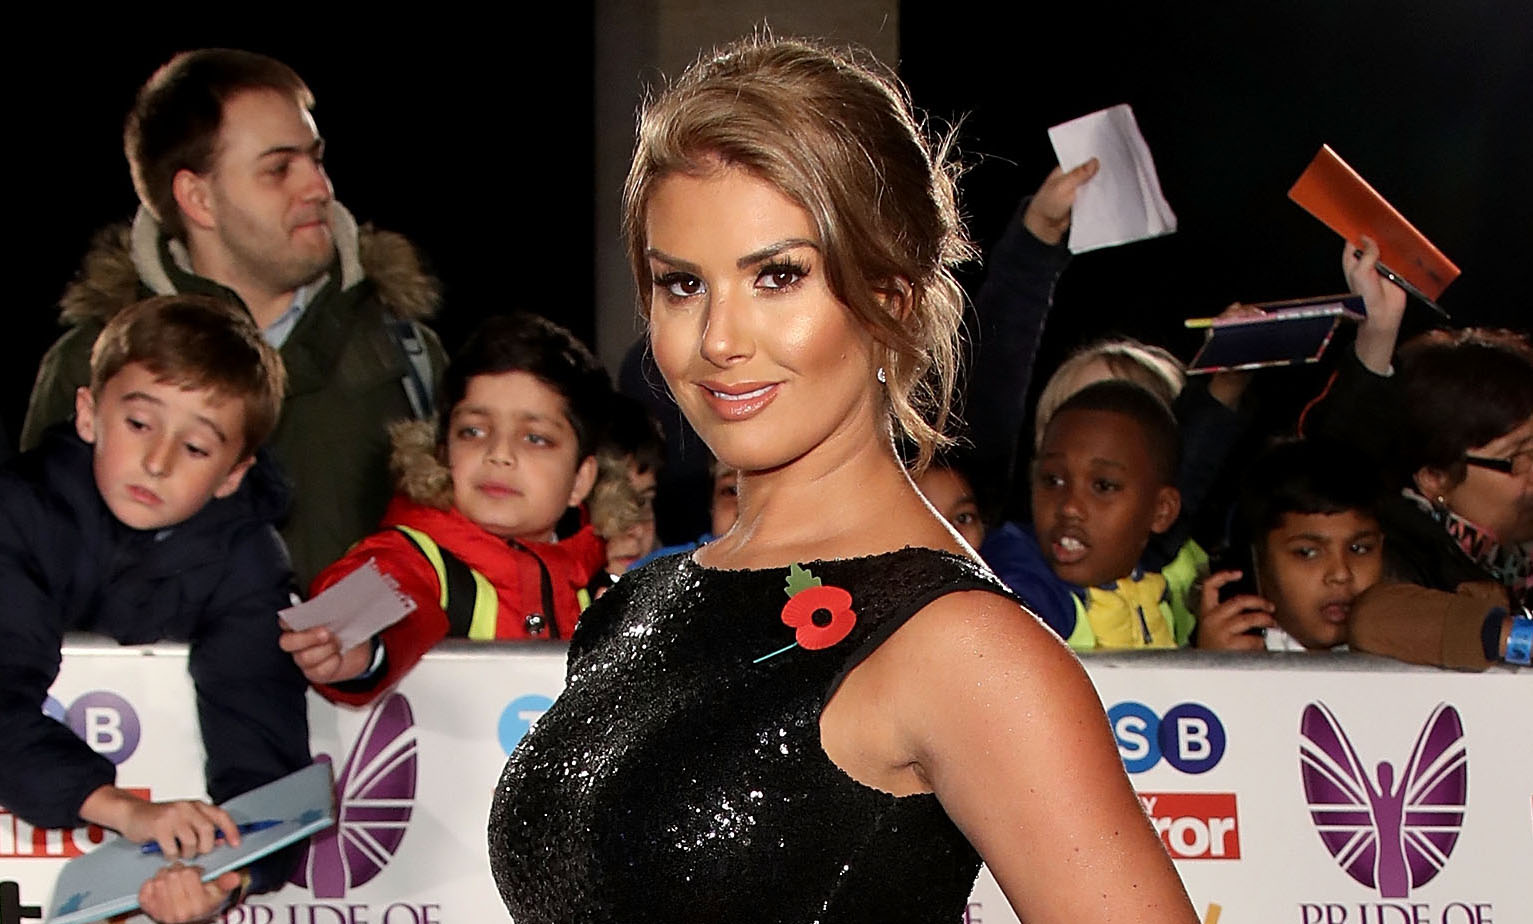 Rebekah Vardy: I'm a Celebrity 2017